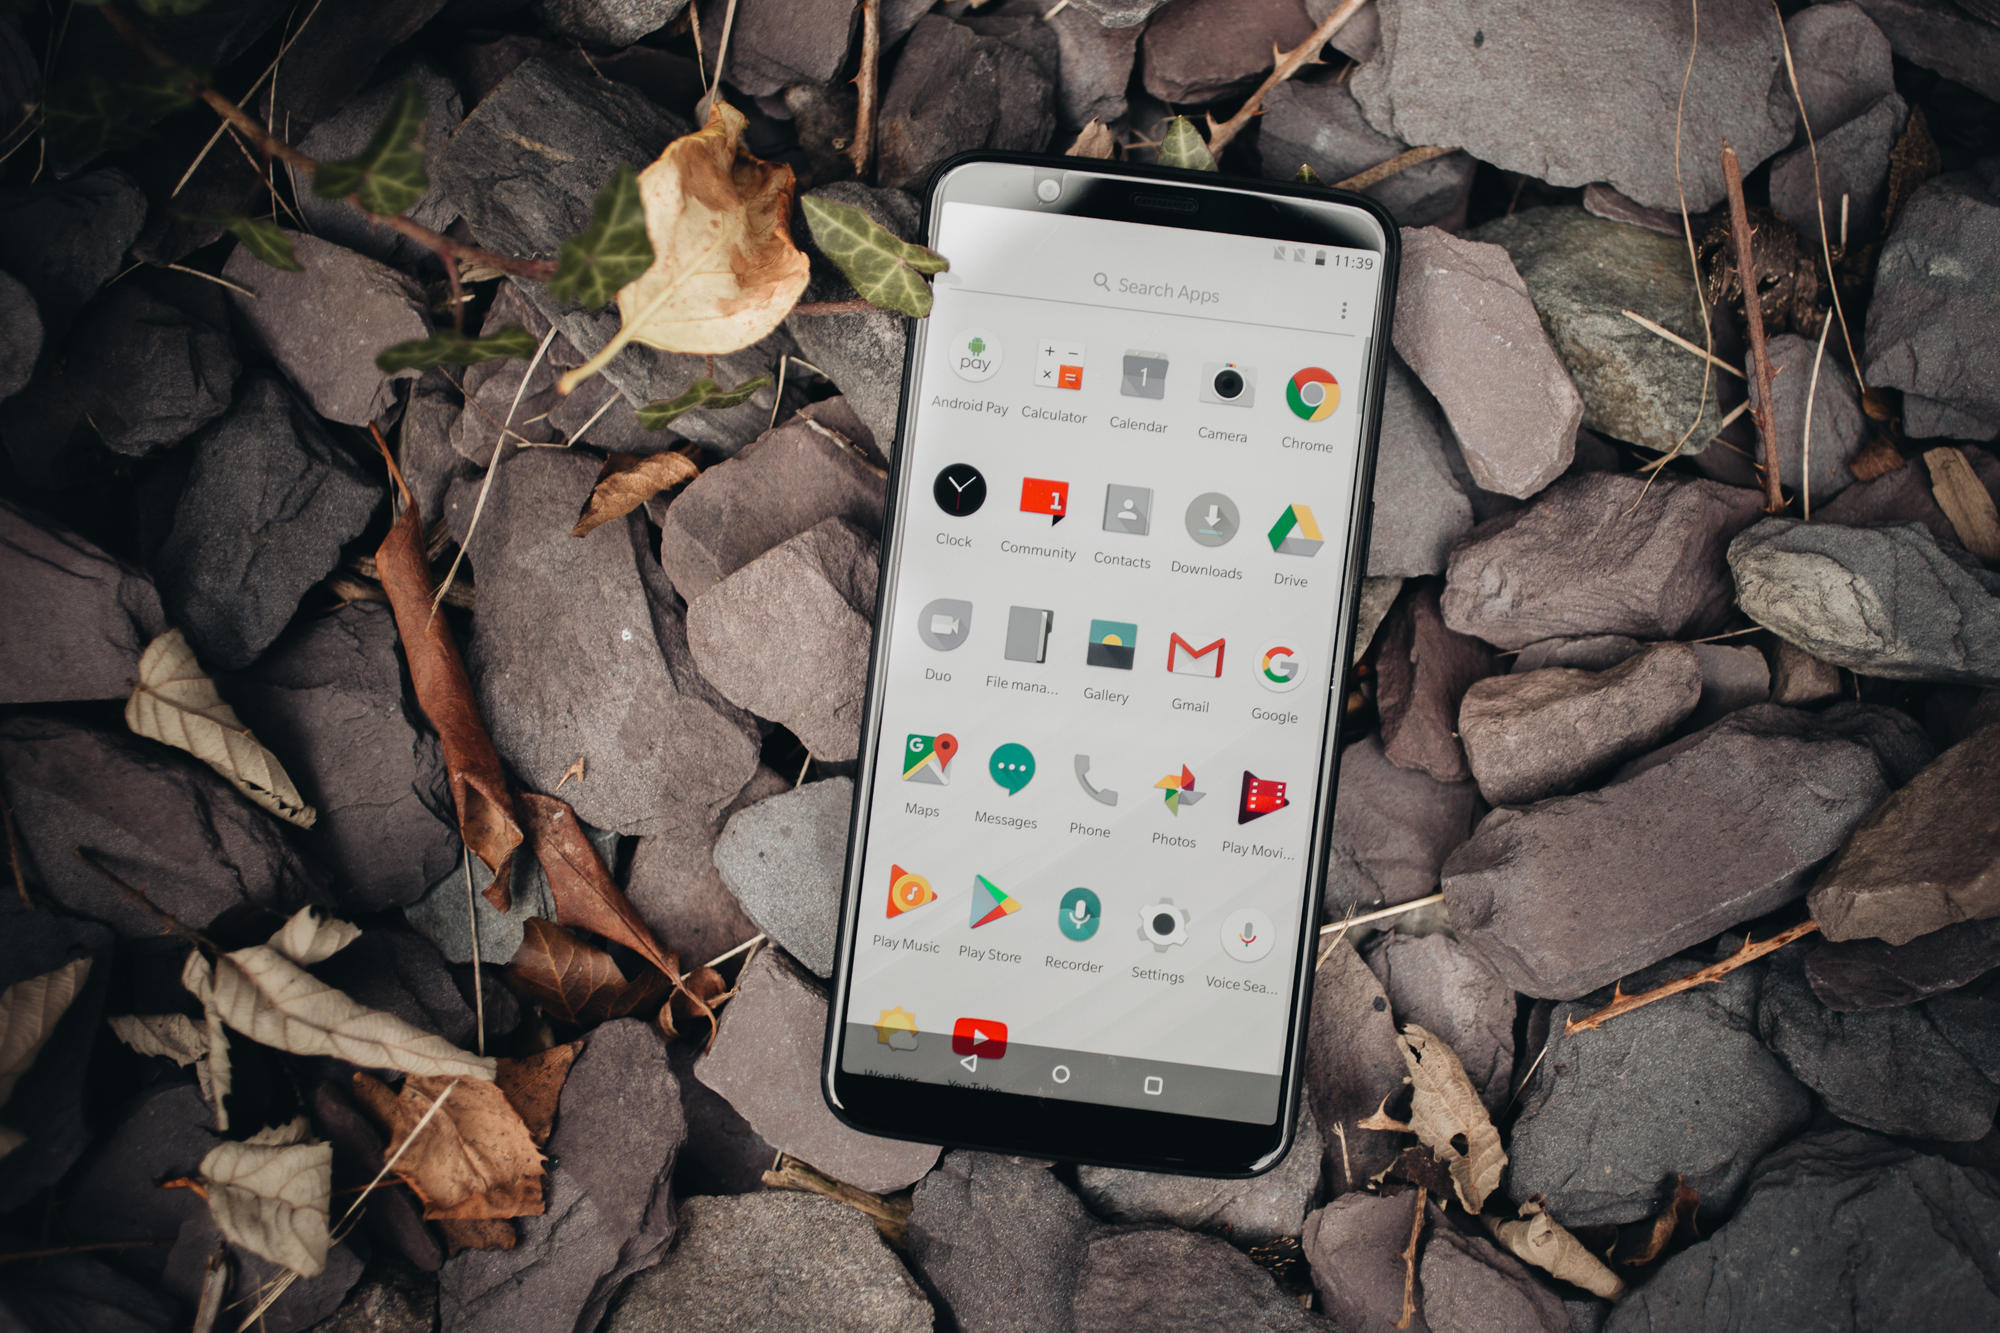 oneplus-5t-product-9